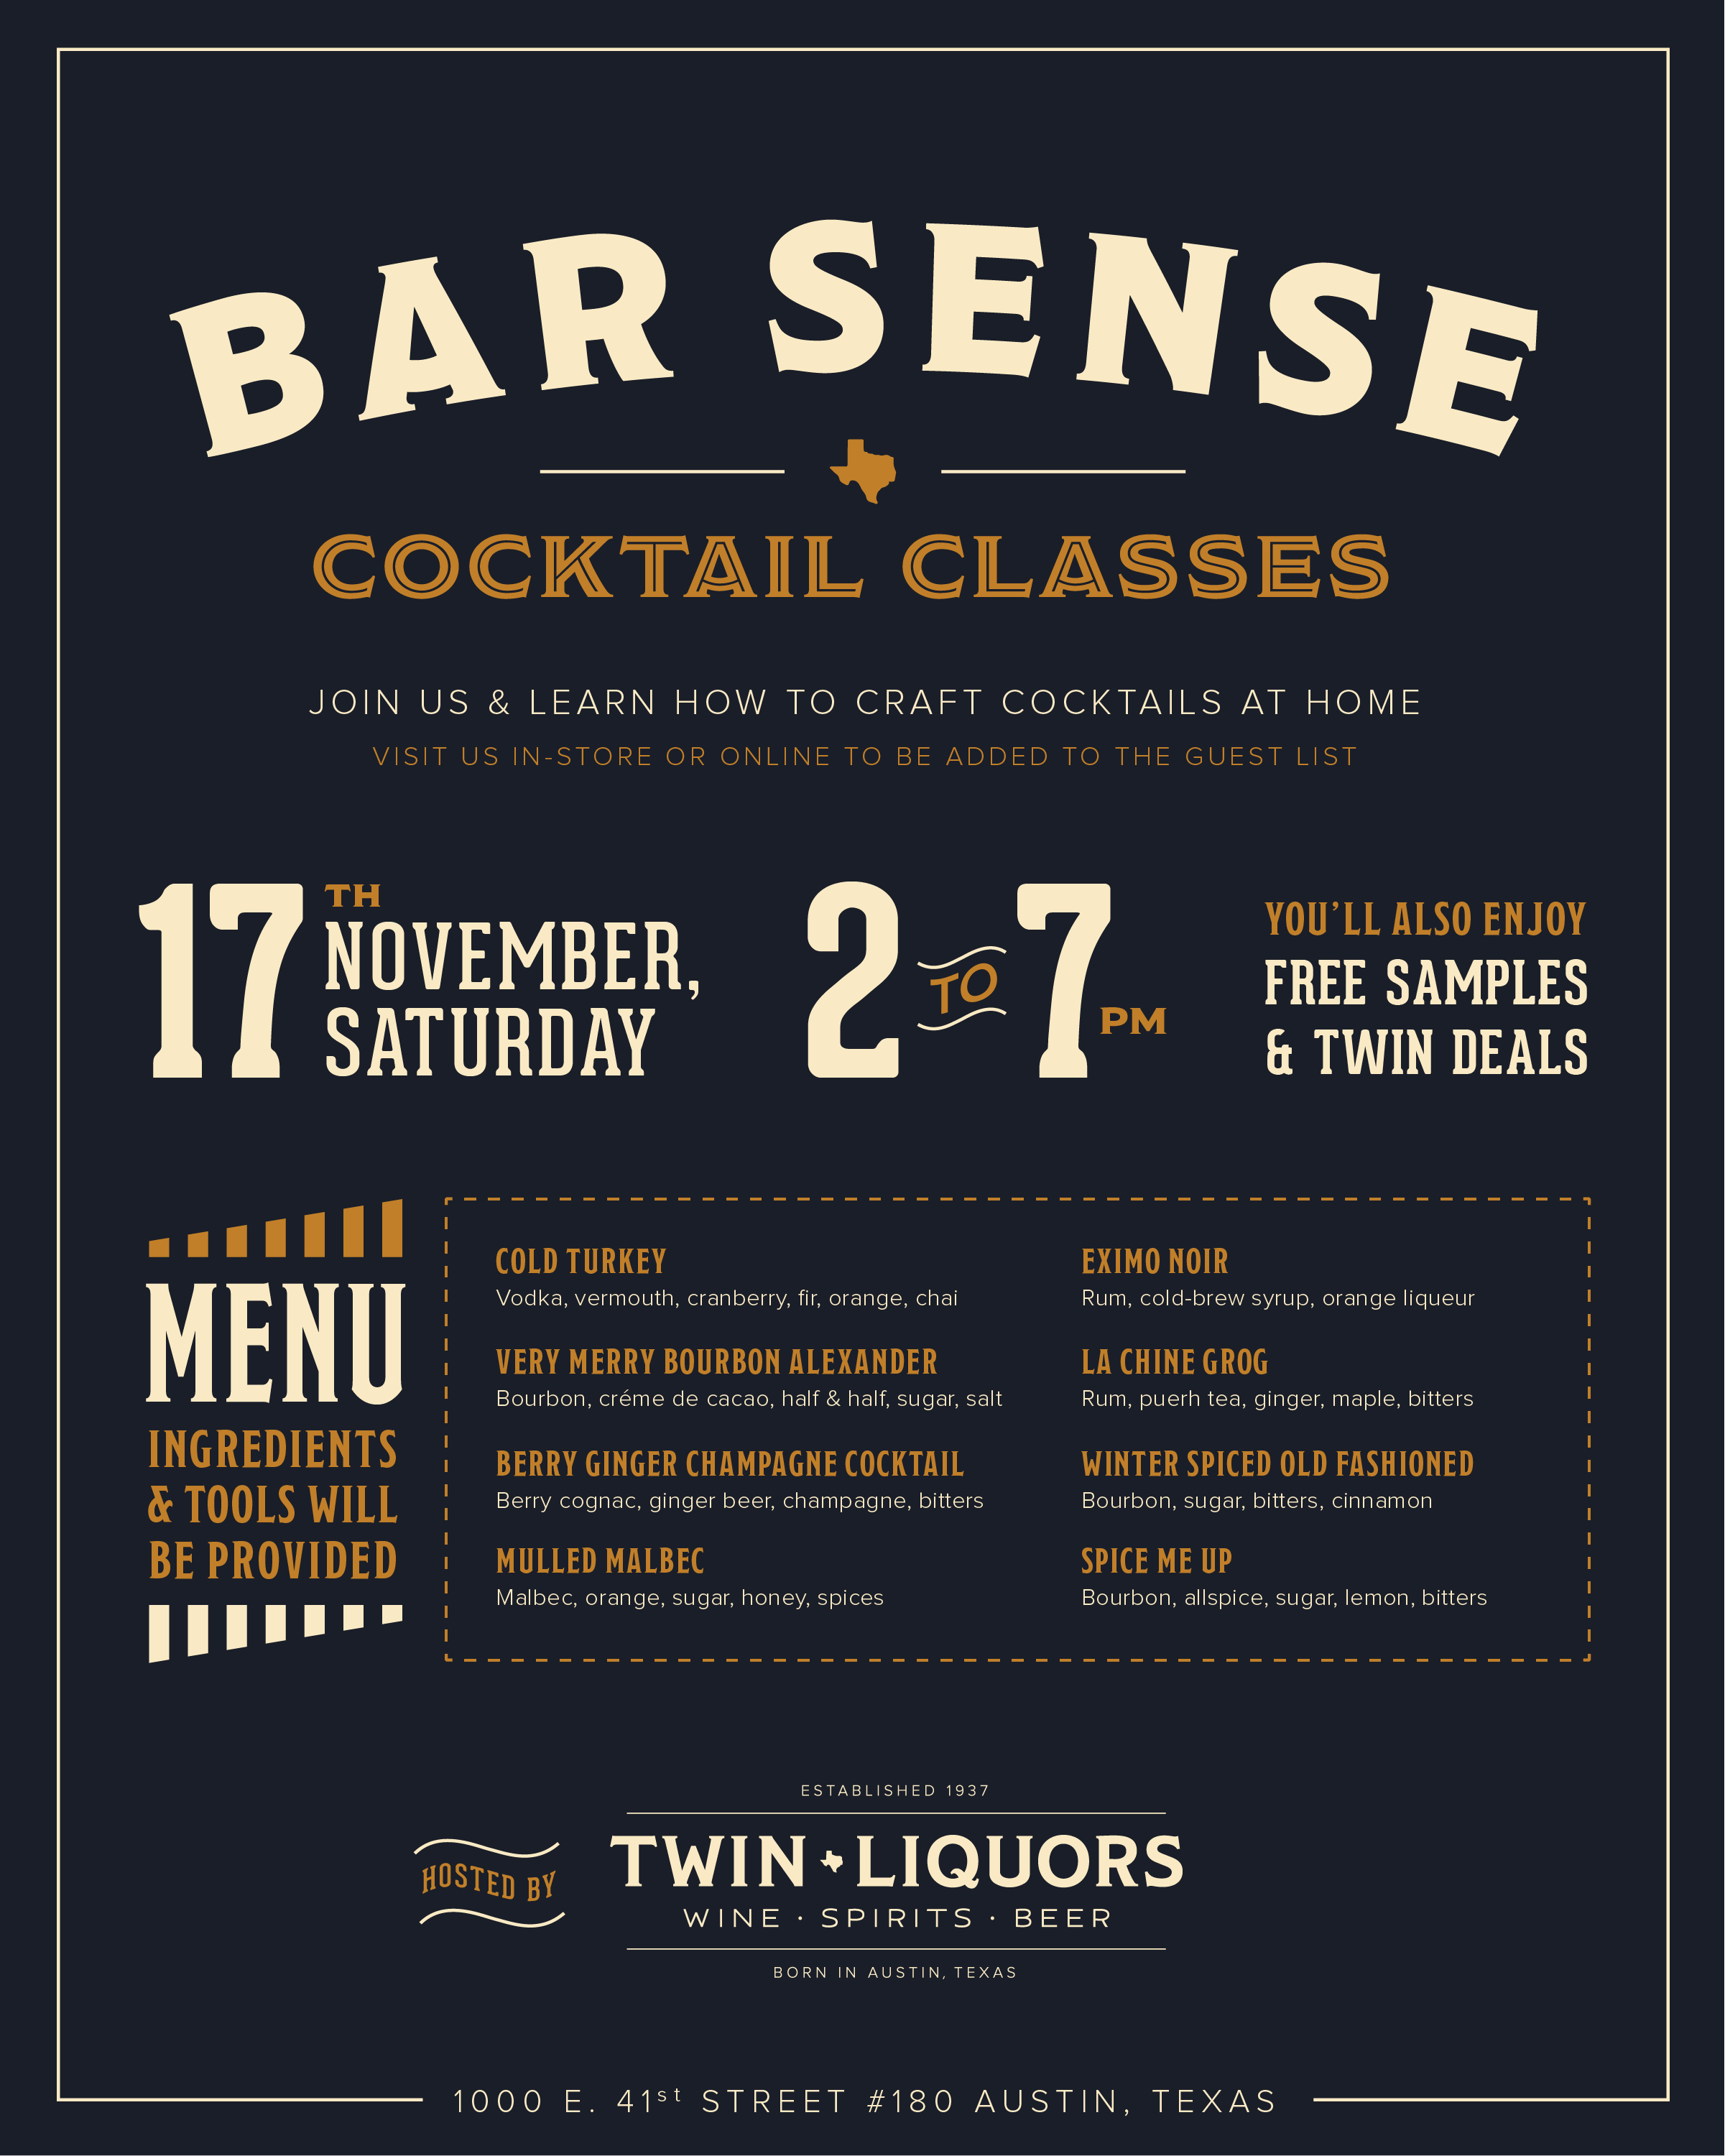 poster_cocktail classes-01-02.png